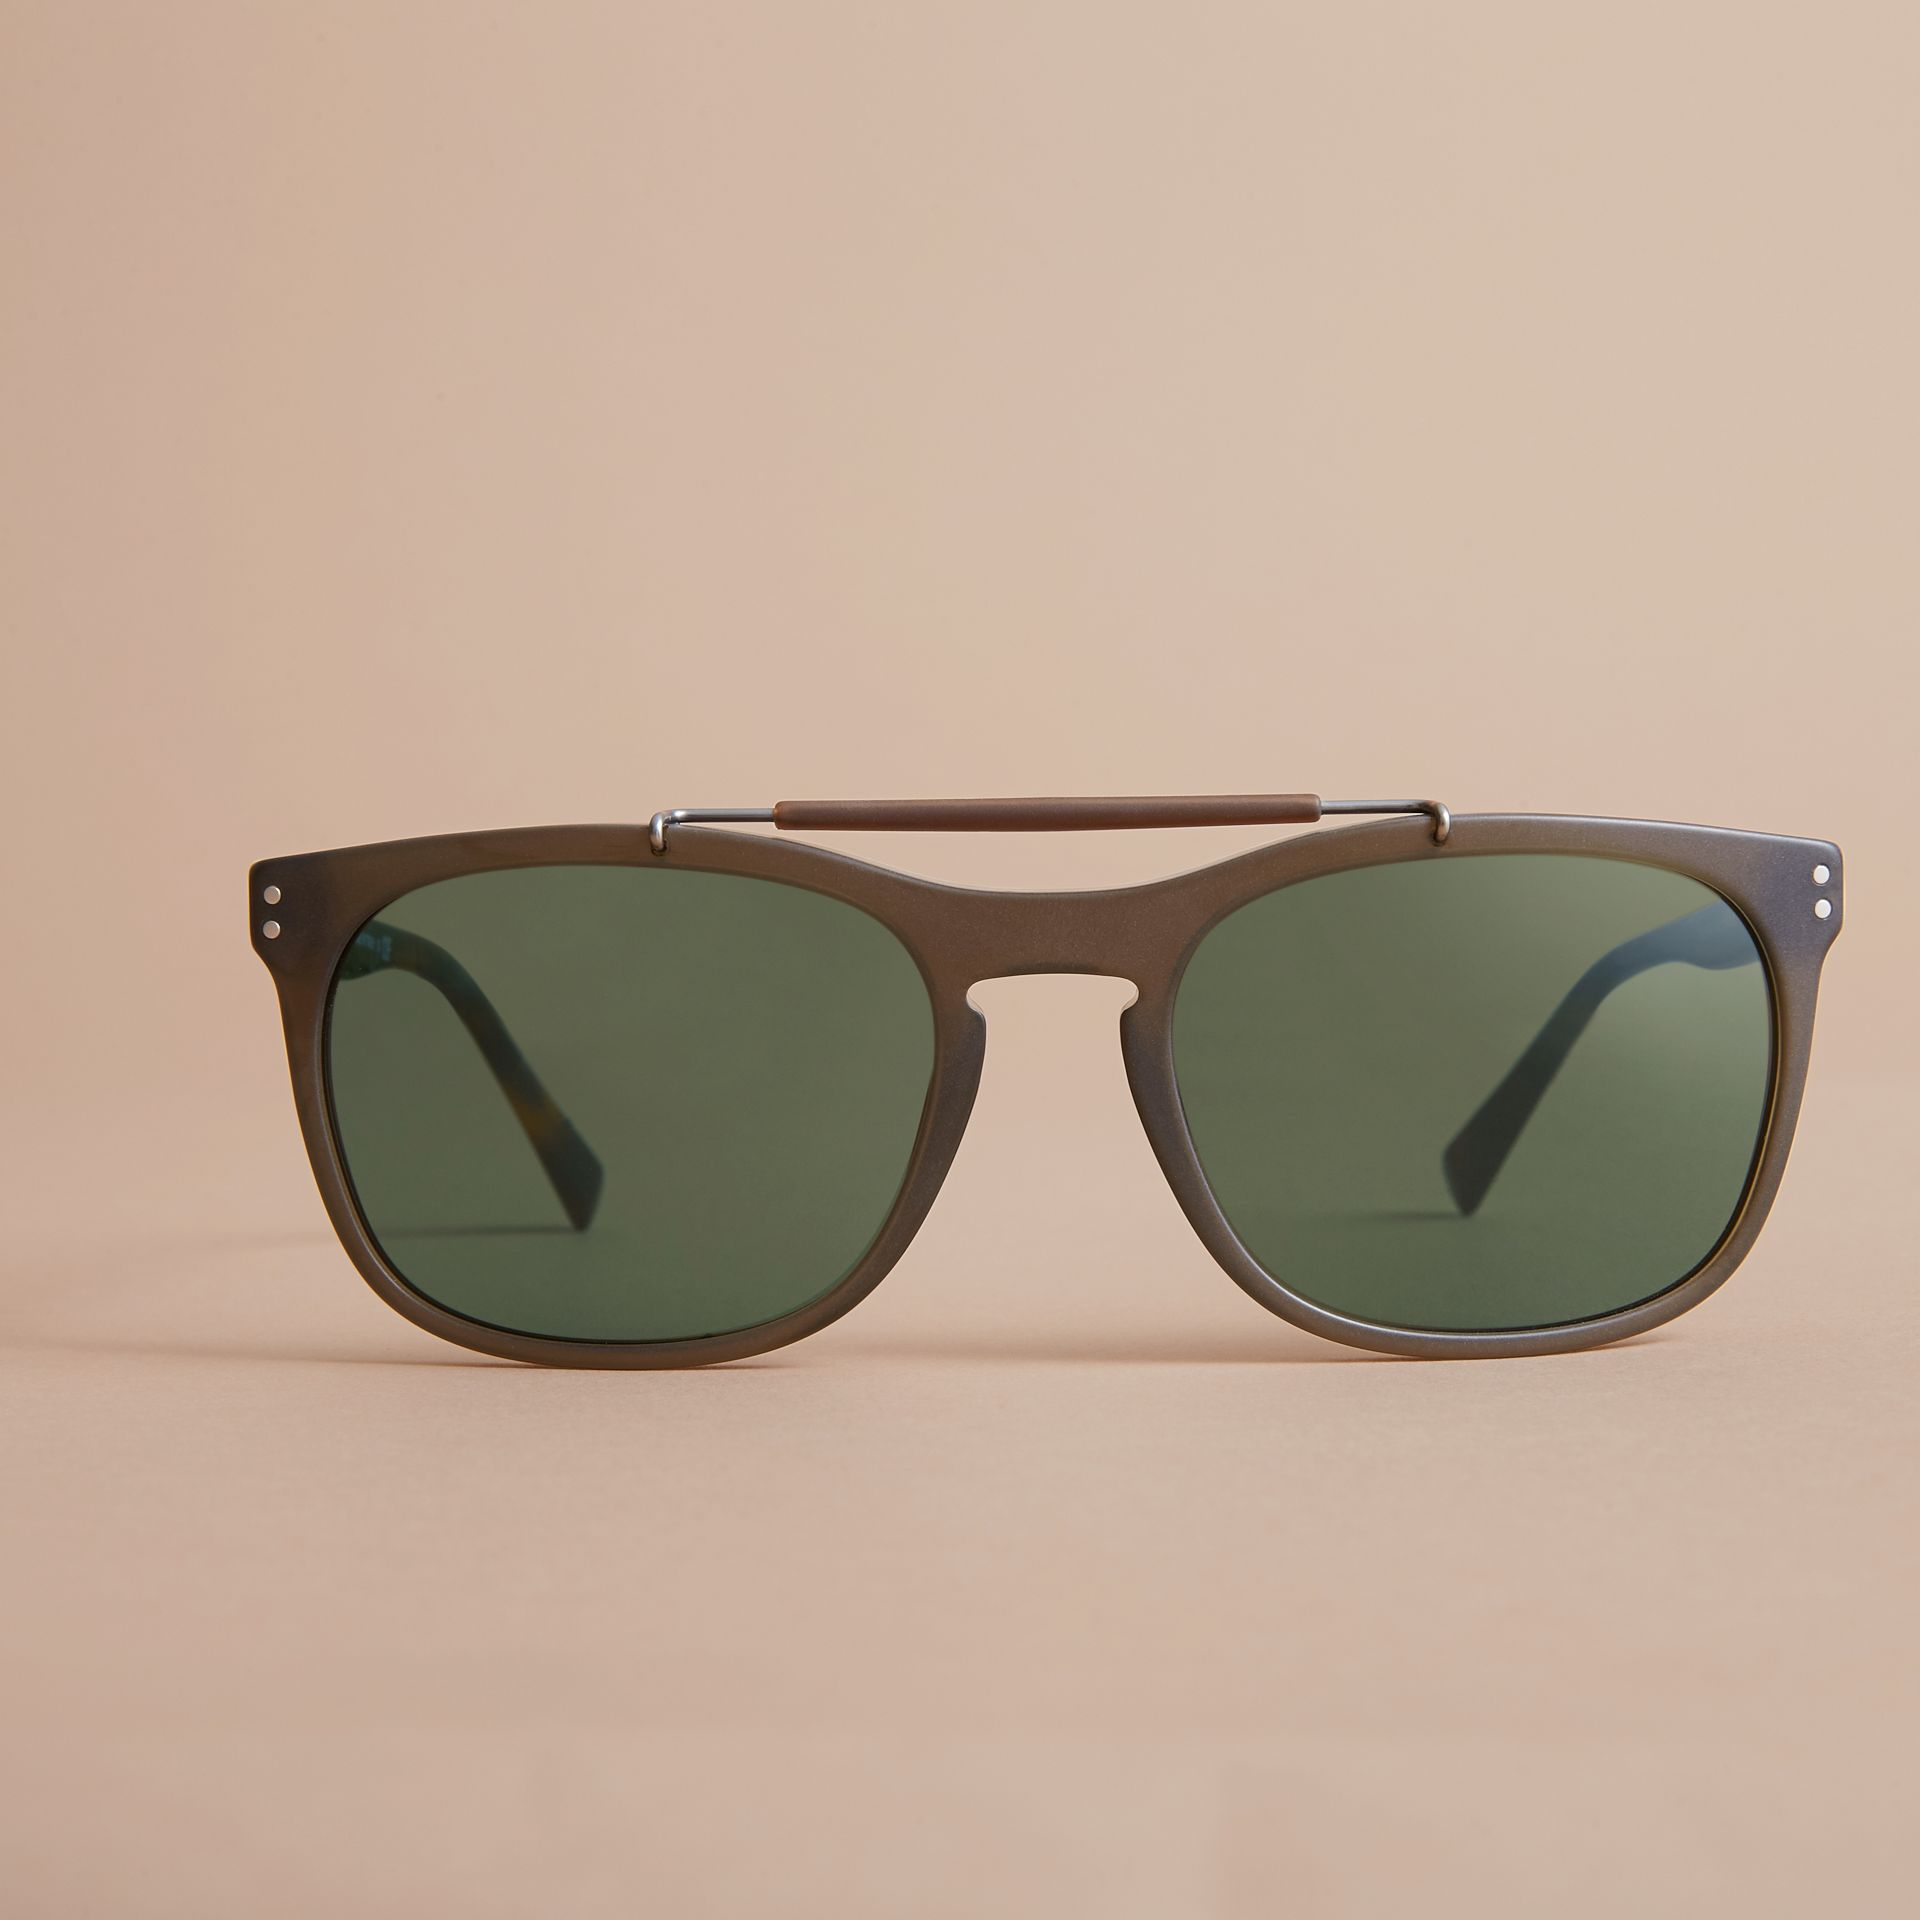 Top Bar Square Frame Sunglasses in Olive - Men | Burberry United States - gallery image 2